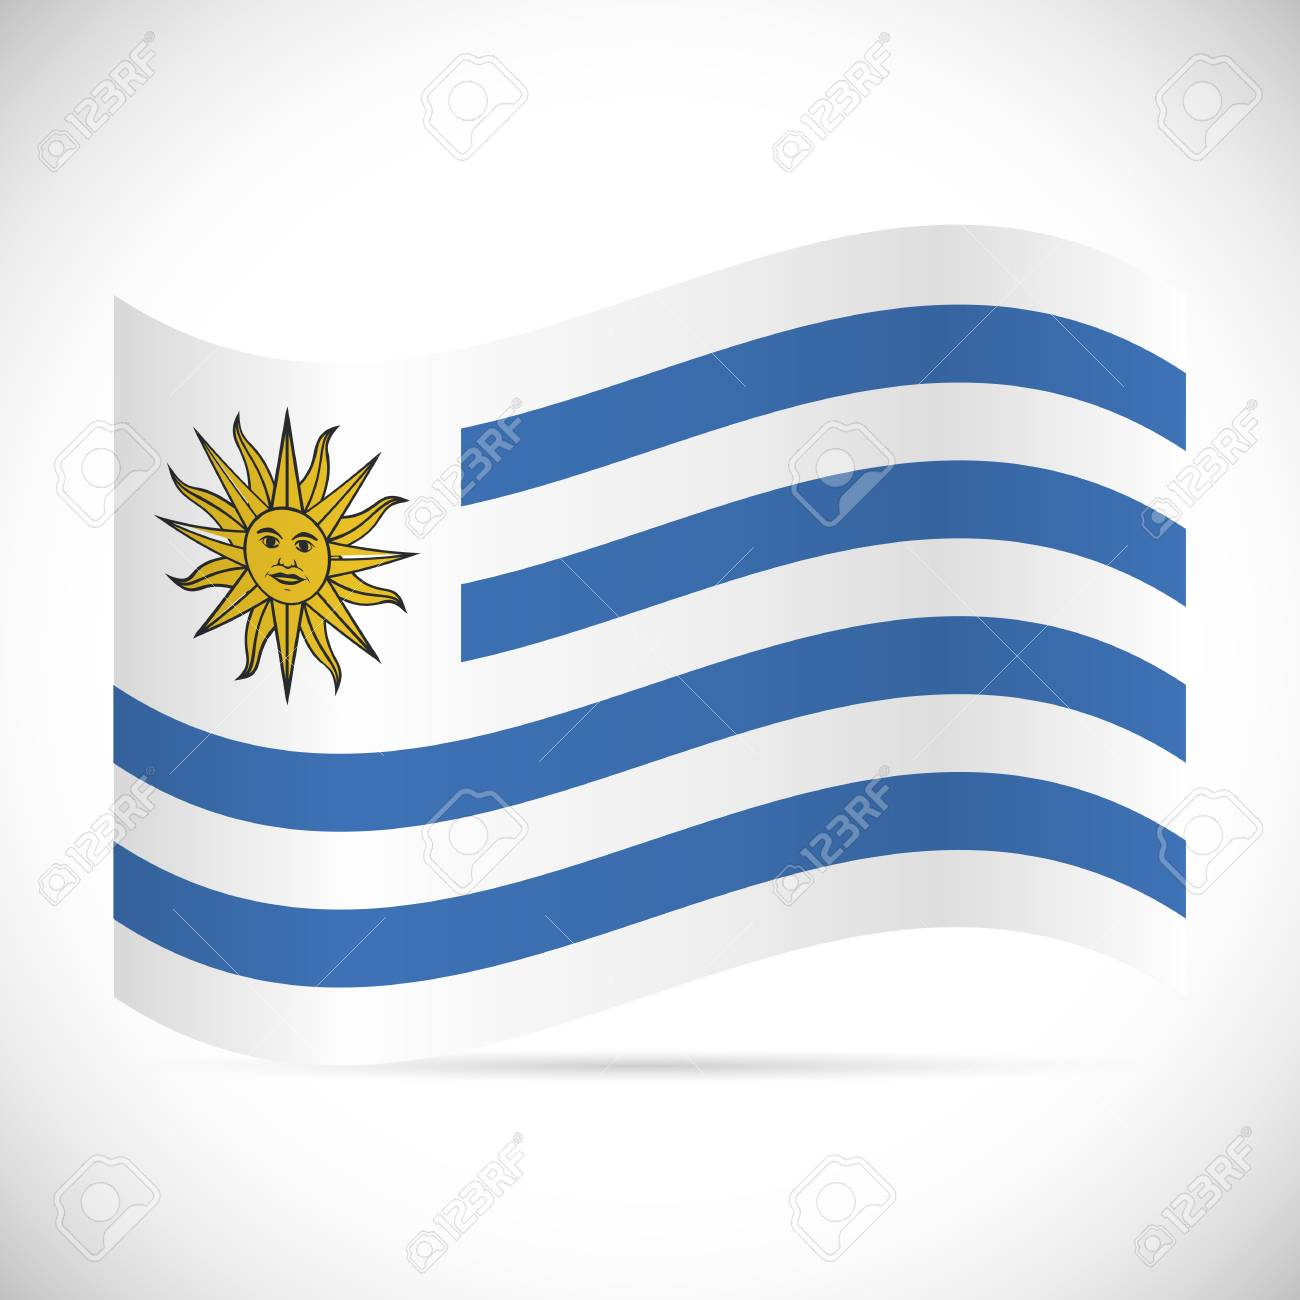 Illustration of the flag of Uruguay isolated on a white background. - 97016255